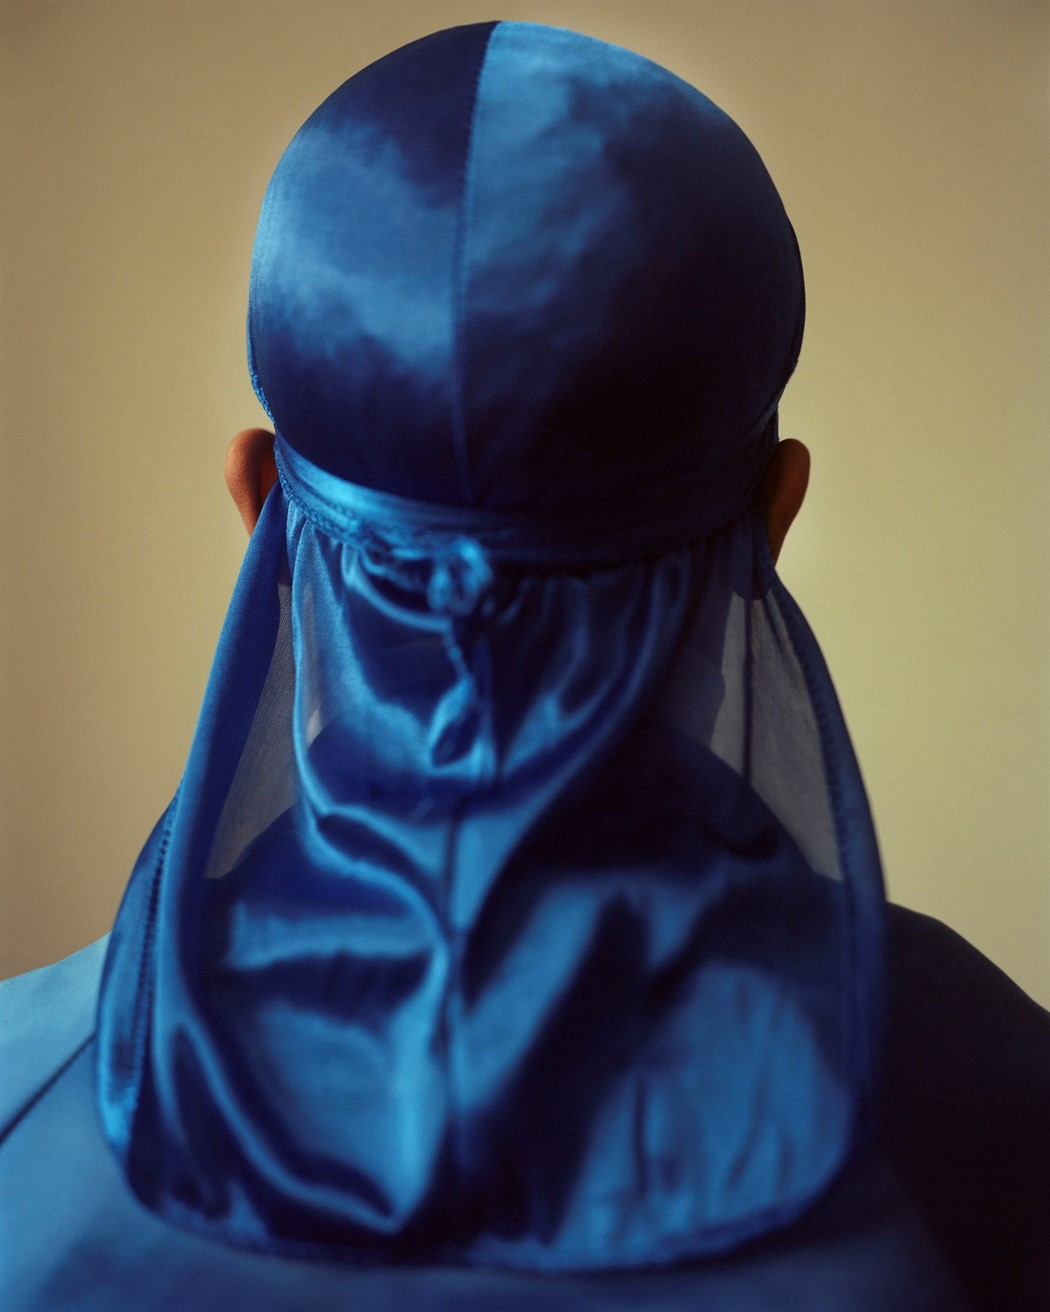 John Edmonds photographer interview Higher book du-rag 2018